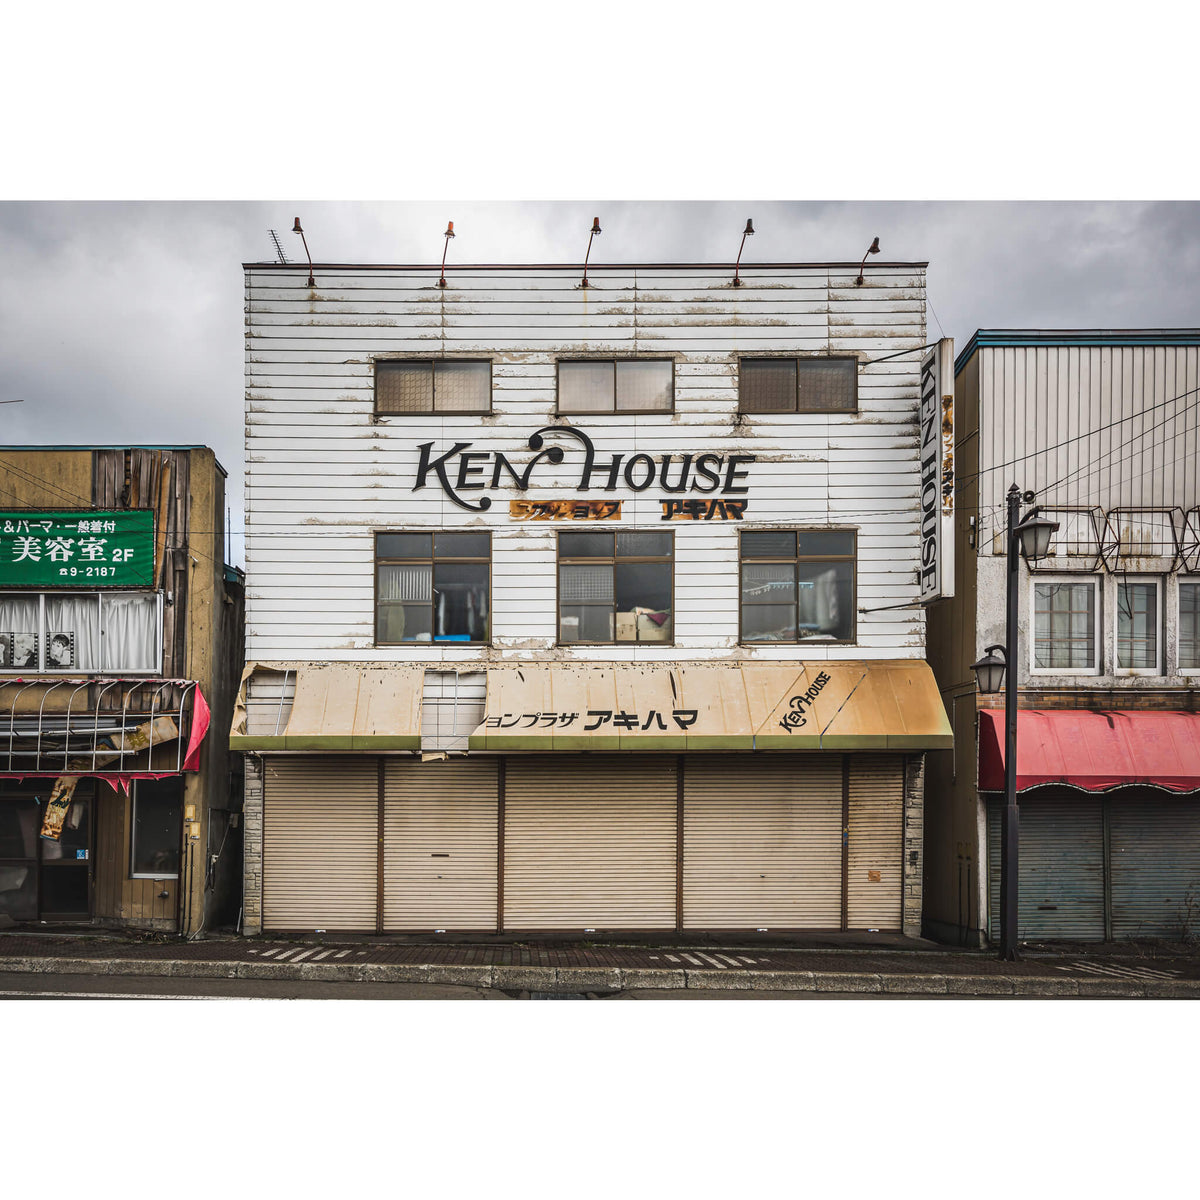 Ken House | Streetscapes of Yubari Fine Art Print - Lost Collective Shop